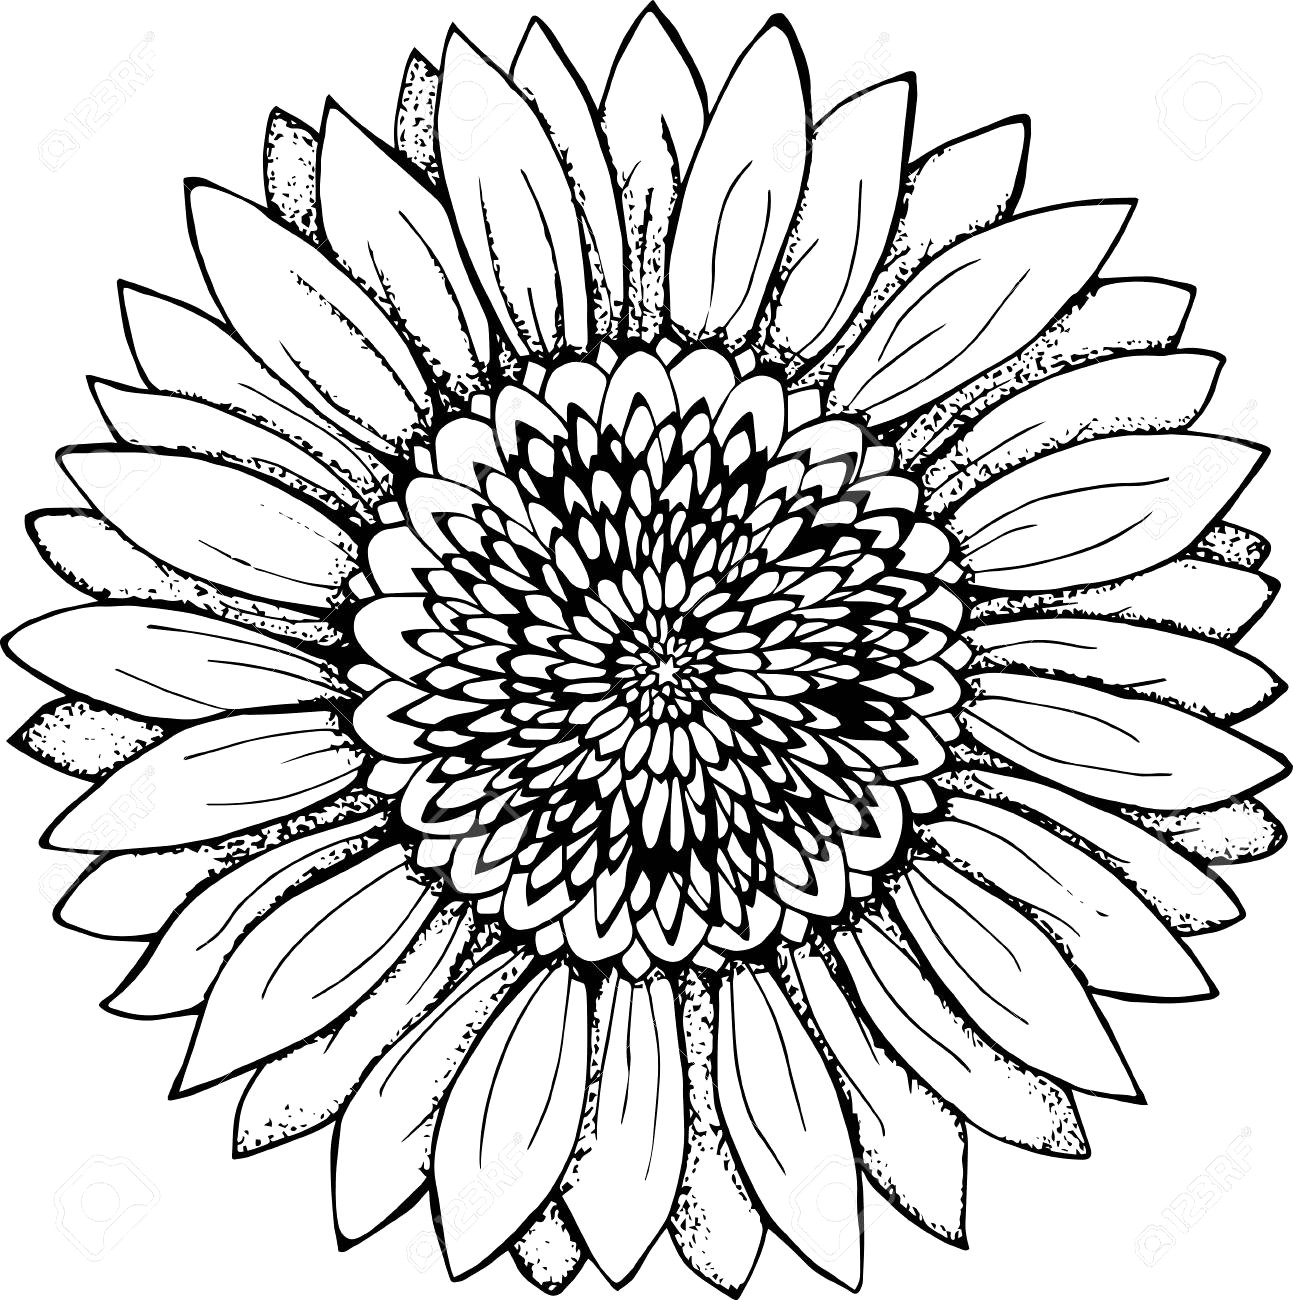 drawings of sunflowers line drawing sunflower at getdrawings free download of sunflowers drawings